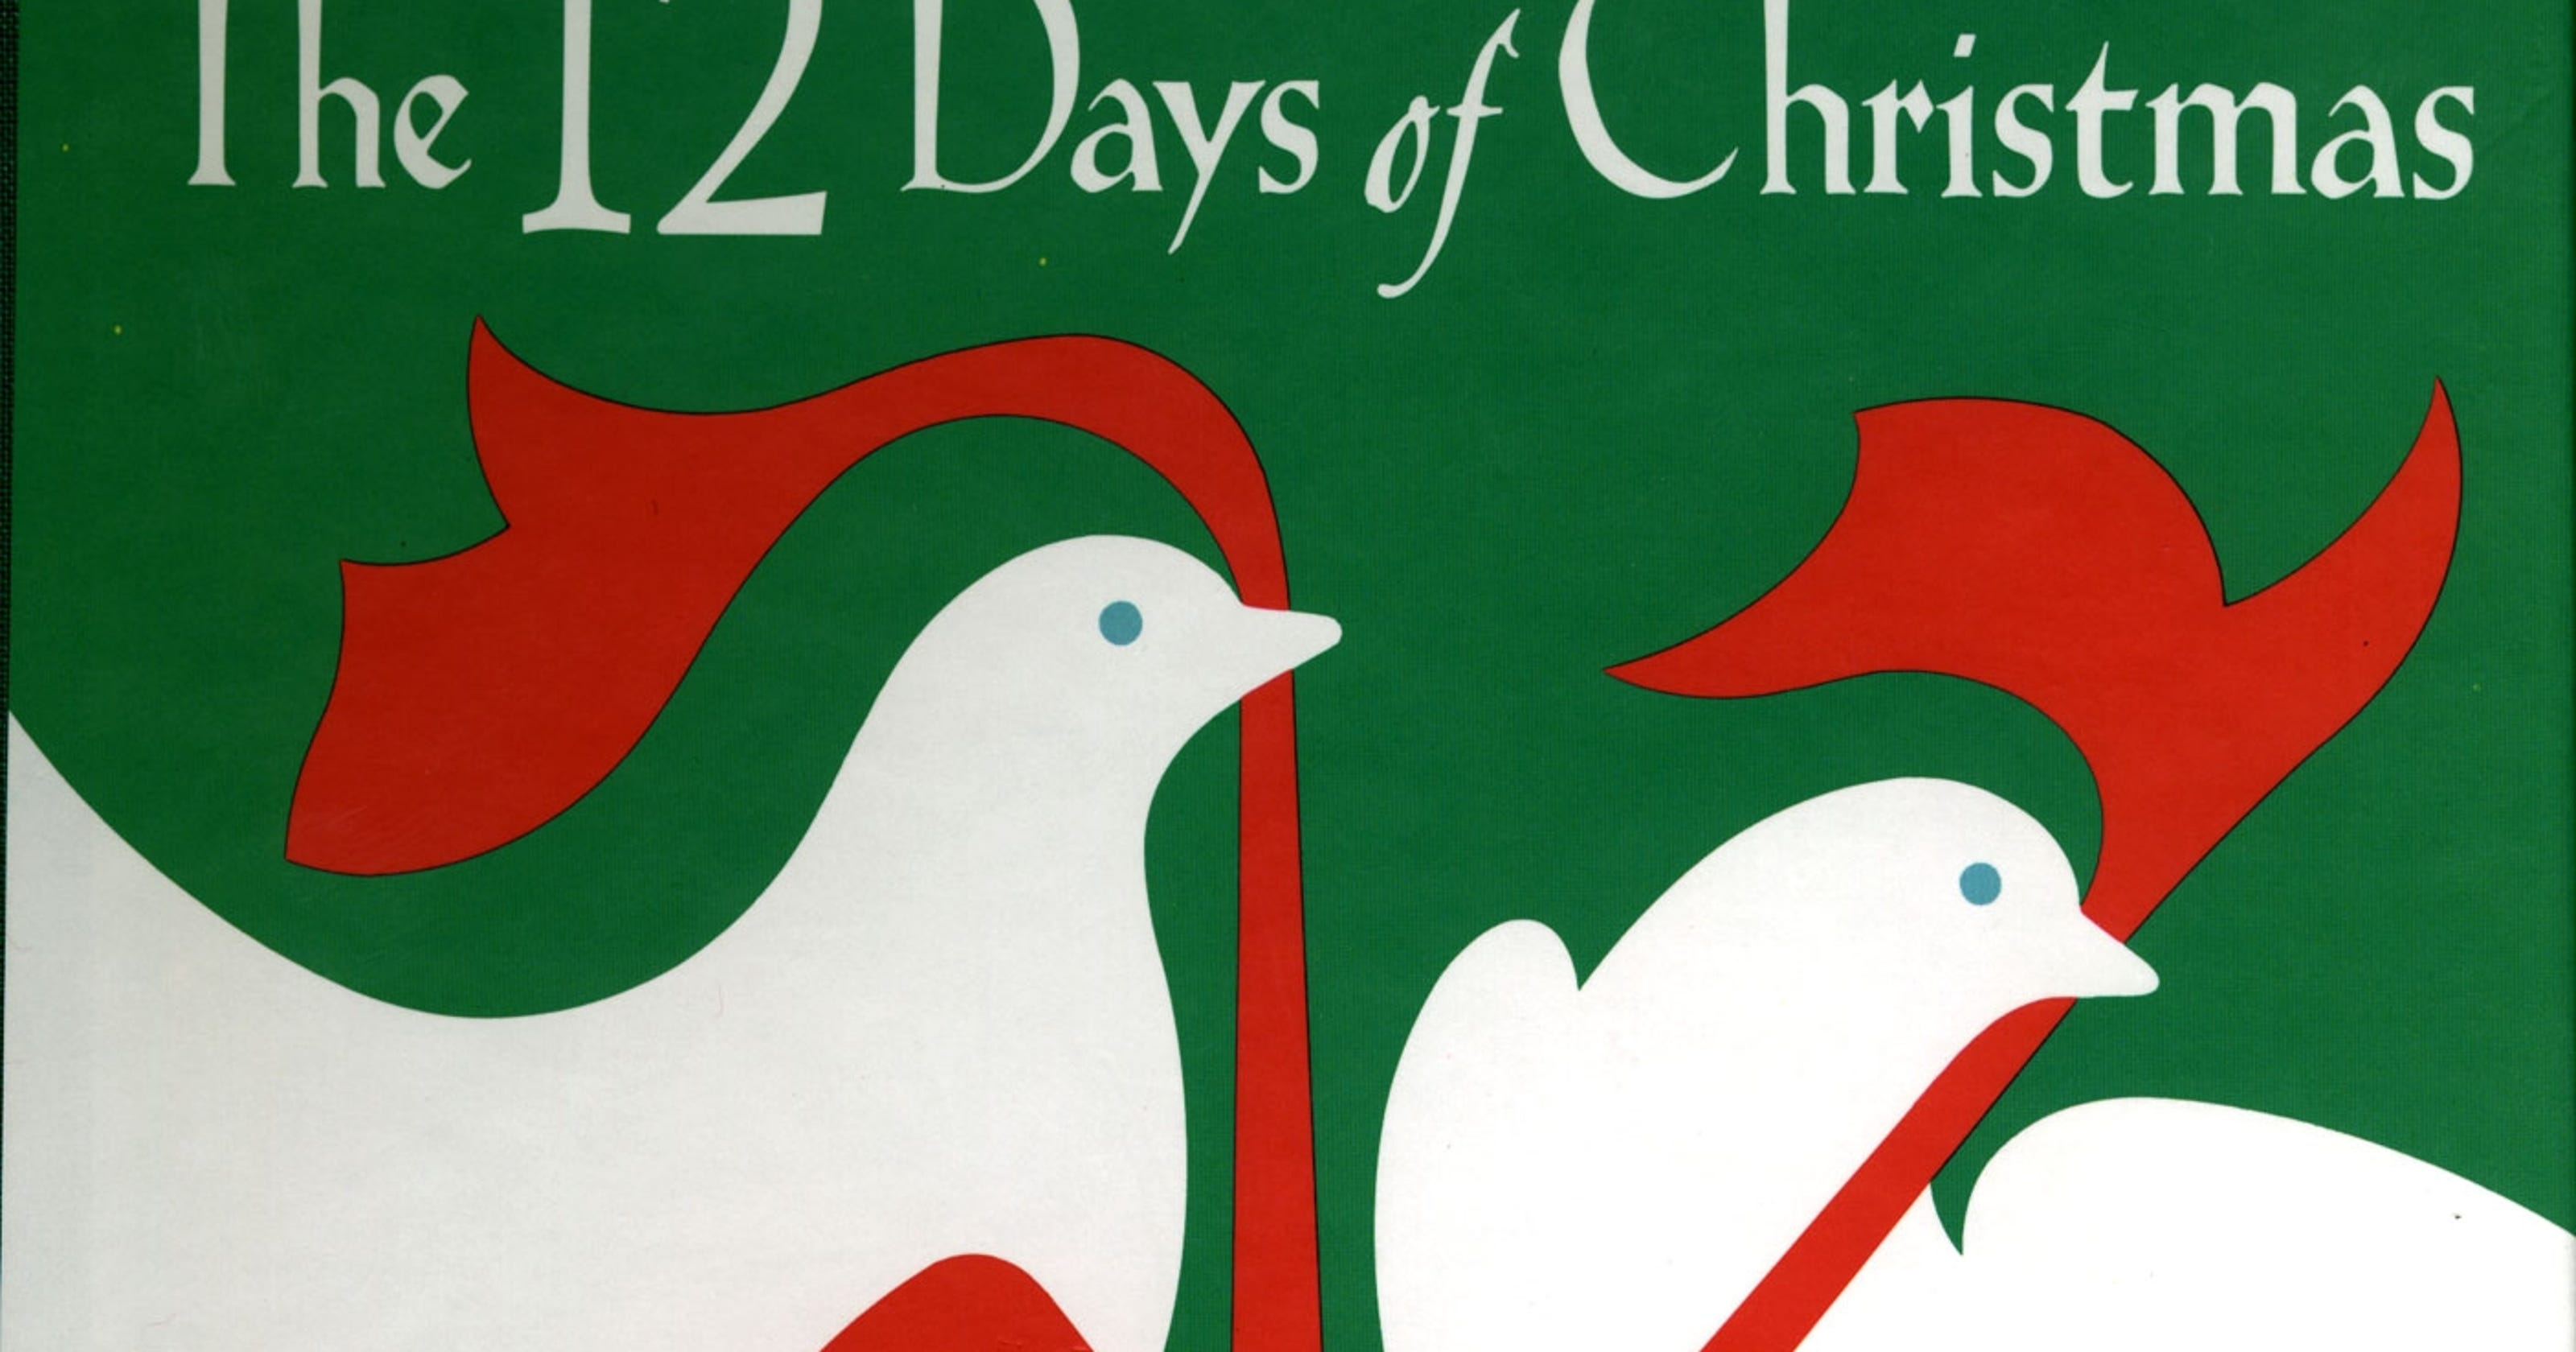 cost of 12 days of christmas tops 107 000